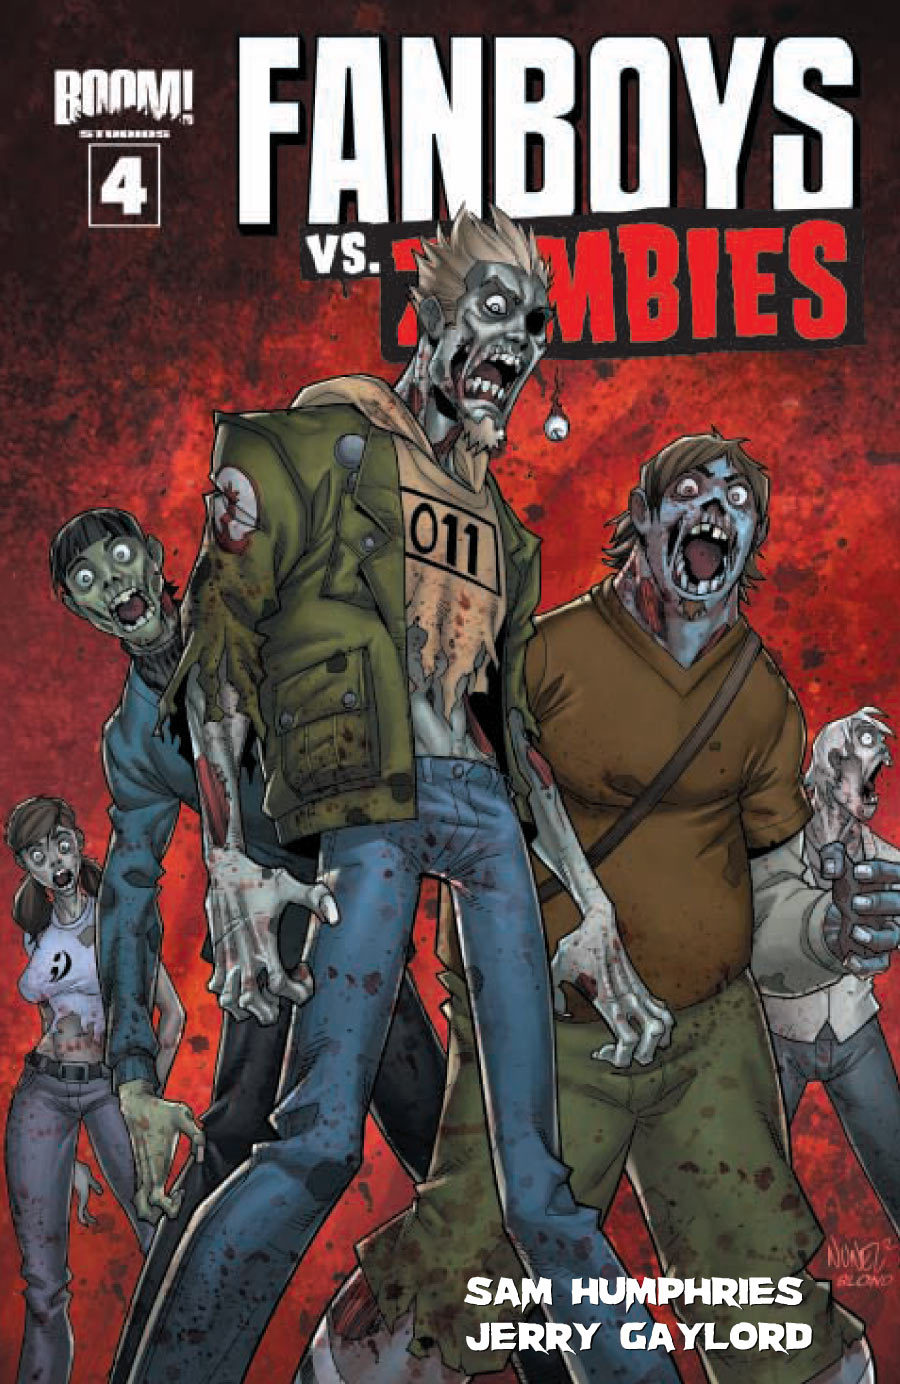 Exclusive preview of Fanboys vs Zombies issue 4 now up at Comic Book Resources! FANBOYS VS. ZOMBIES issue 4 The issue where everyone gets some ON-SALE WEDNESDAY, JULY 4